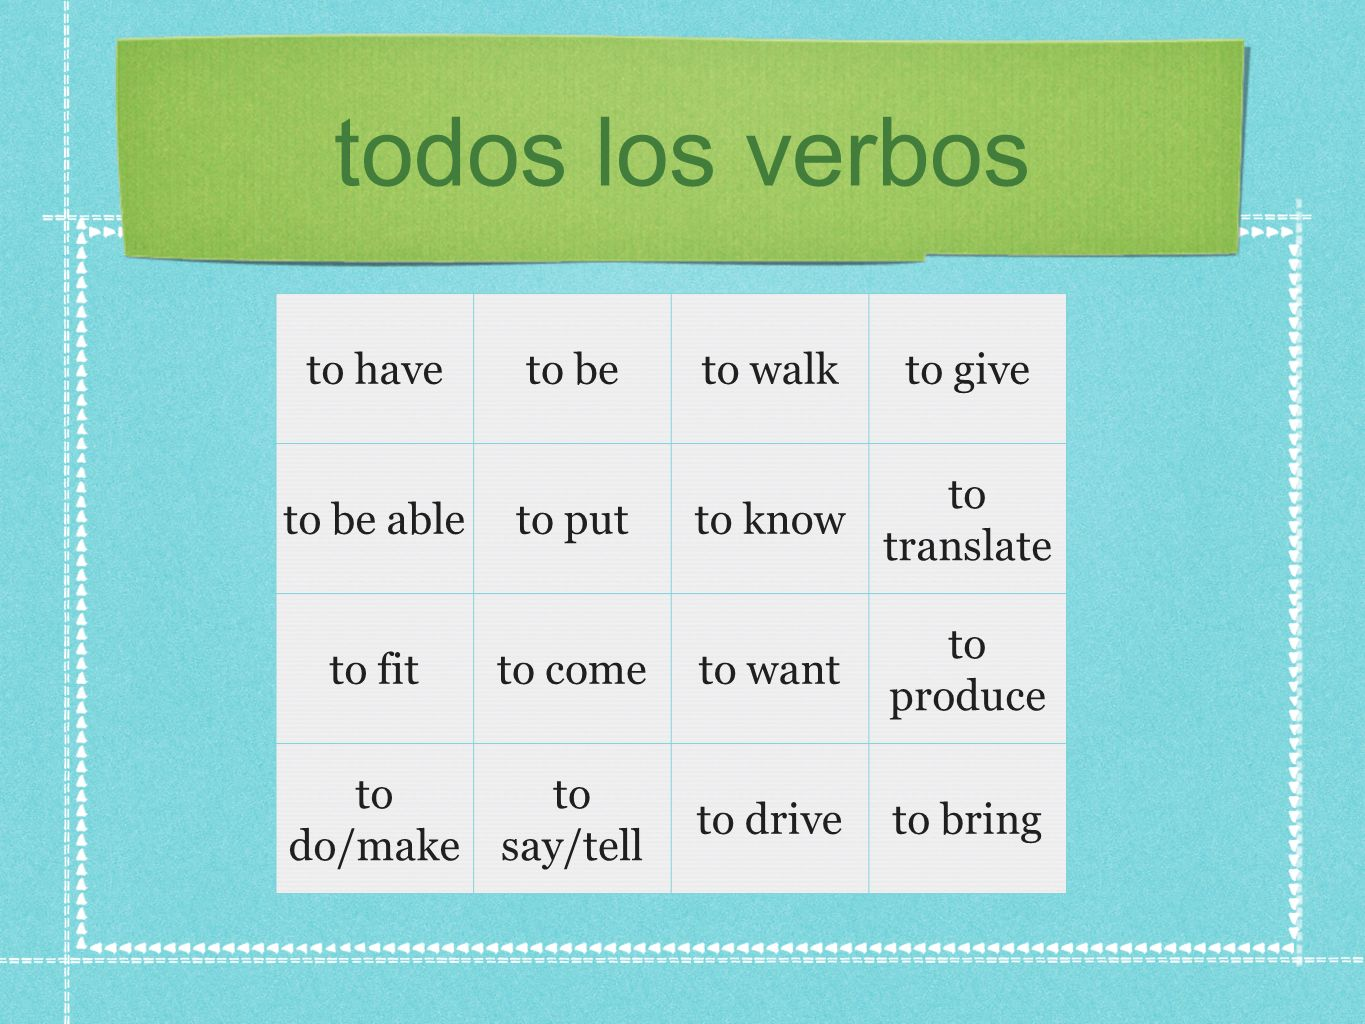 todos los verbos to haveto beto walkto give to be ableto putto know to translate to fitto cometo want to produce to do/make to say/tell to driveto bring